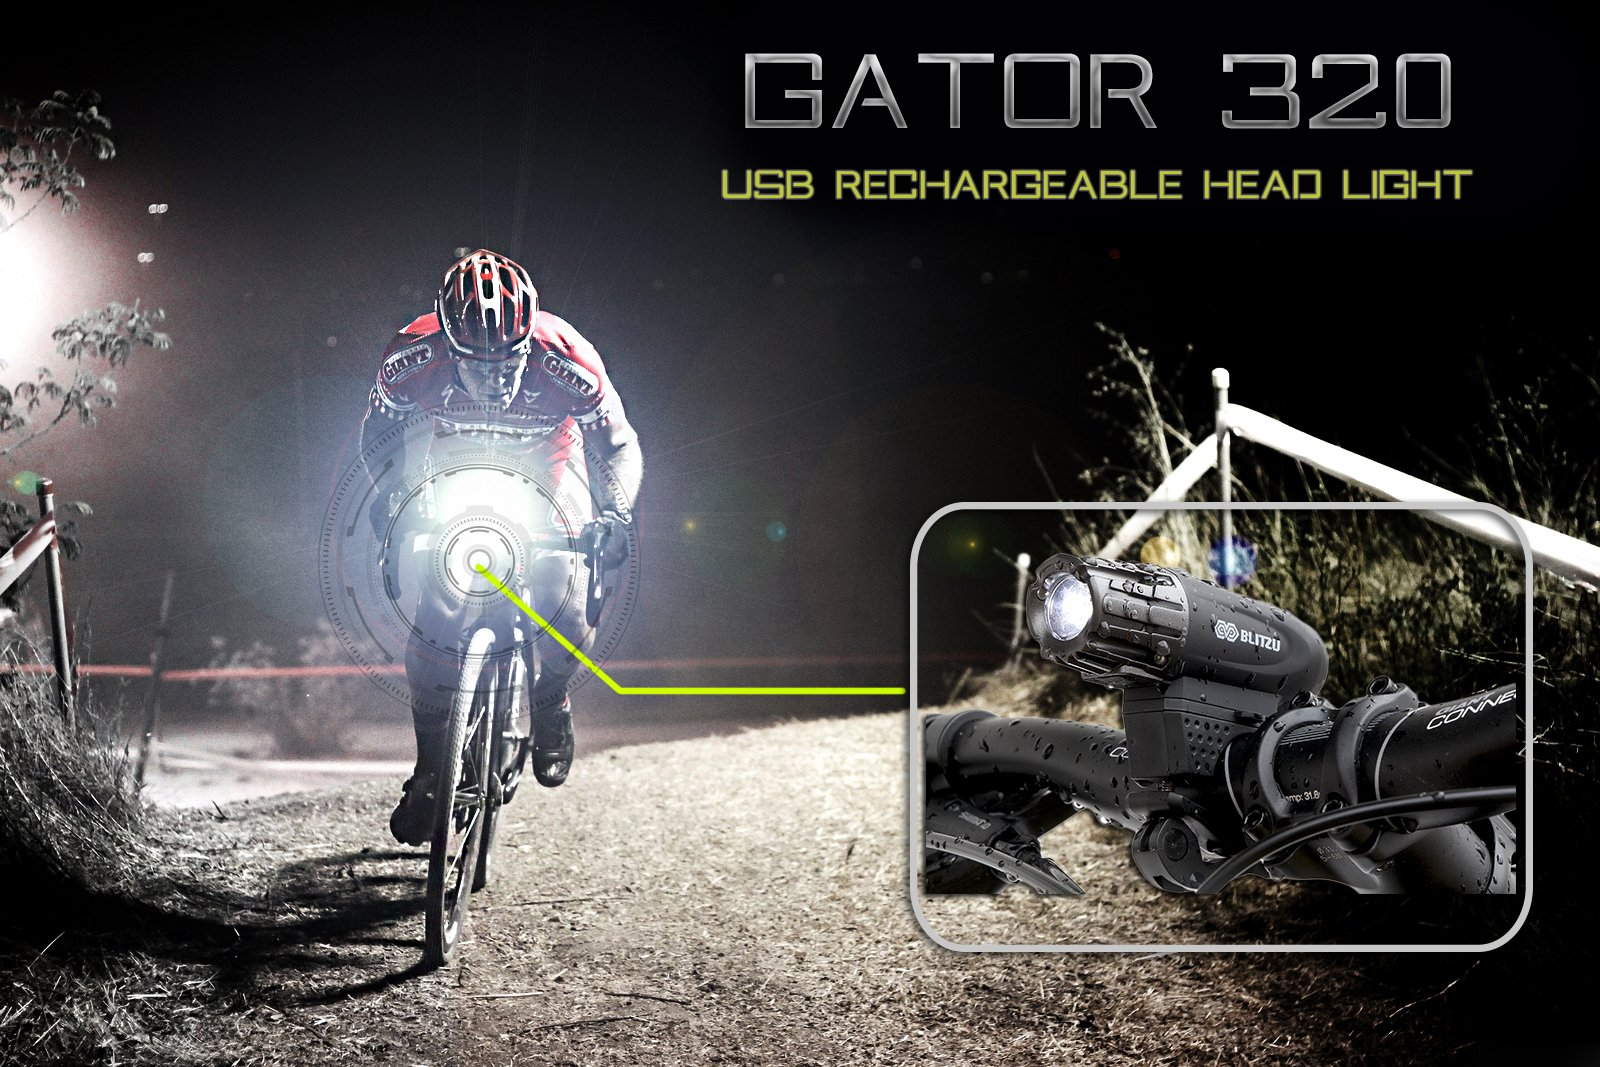 BLITZU Gator 320 USB Rechargeable Bike Light Set Powerful Lumens Bicycle Headlight Free Tail Light, LED Front and Back Rear Lights Easy to Install for Kids Men Women Road Cycling Safety Flashlight by BLITZU (Image #9)